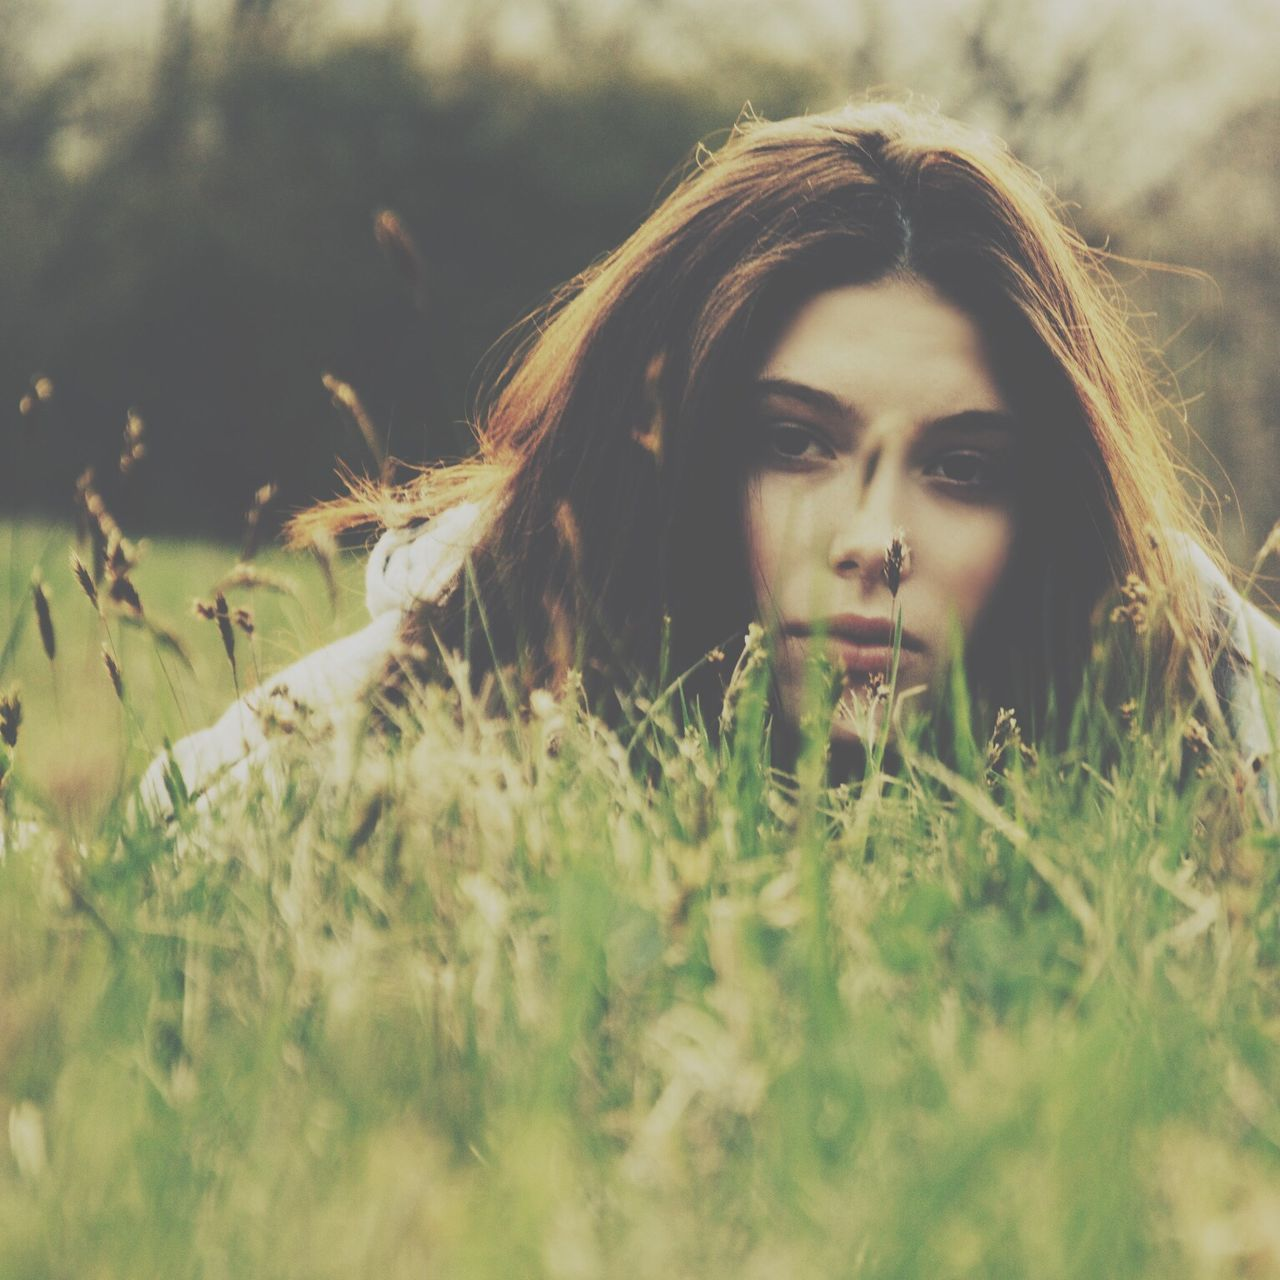 Portrait of beautiful young woman relaxing on grass in park